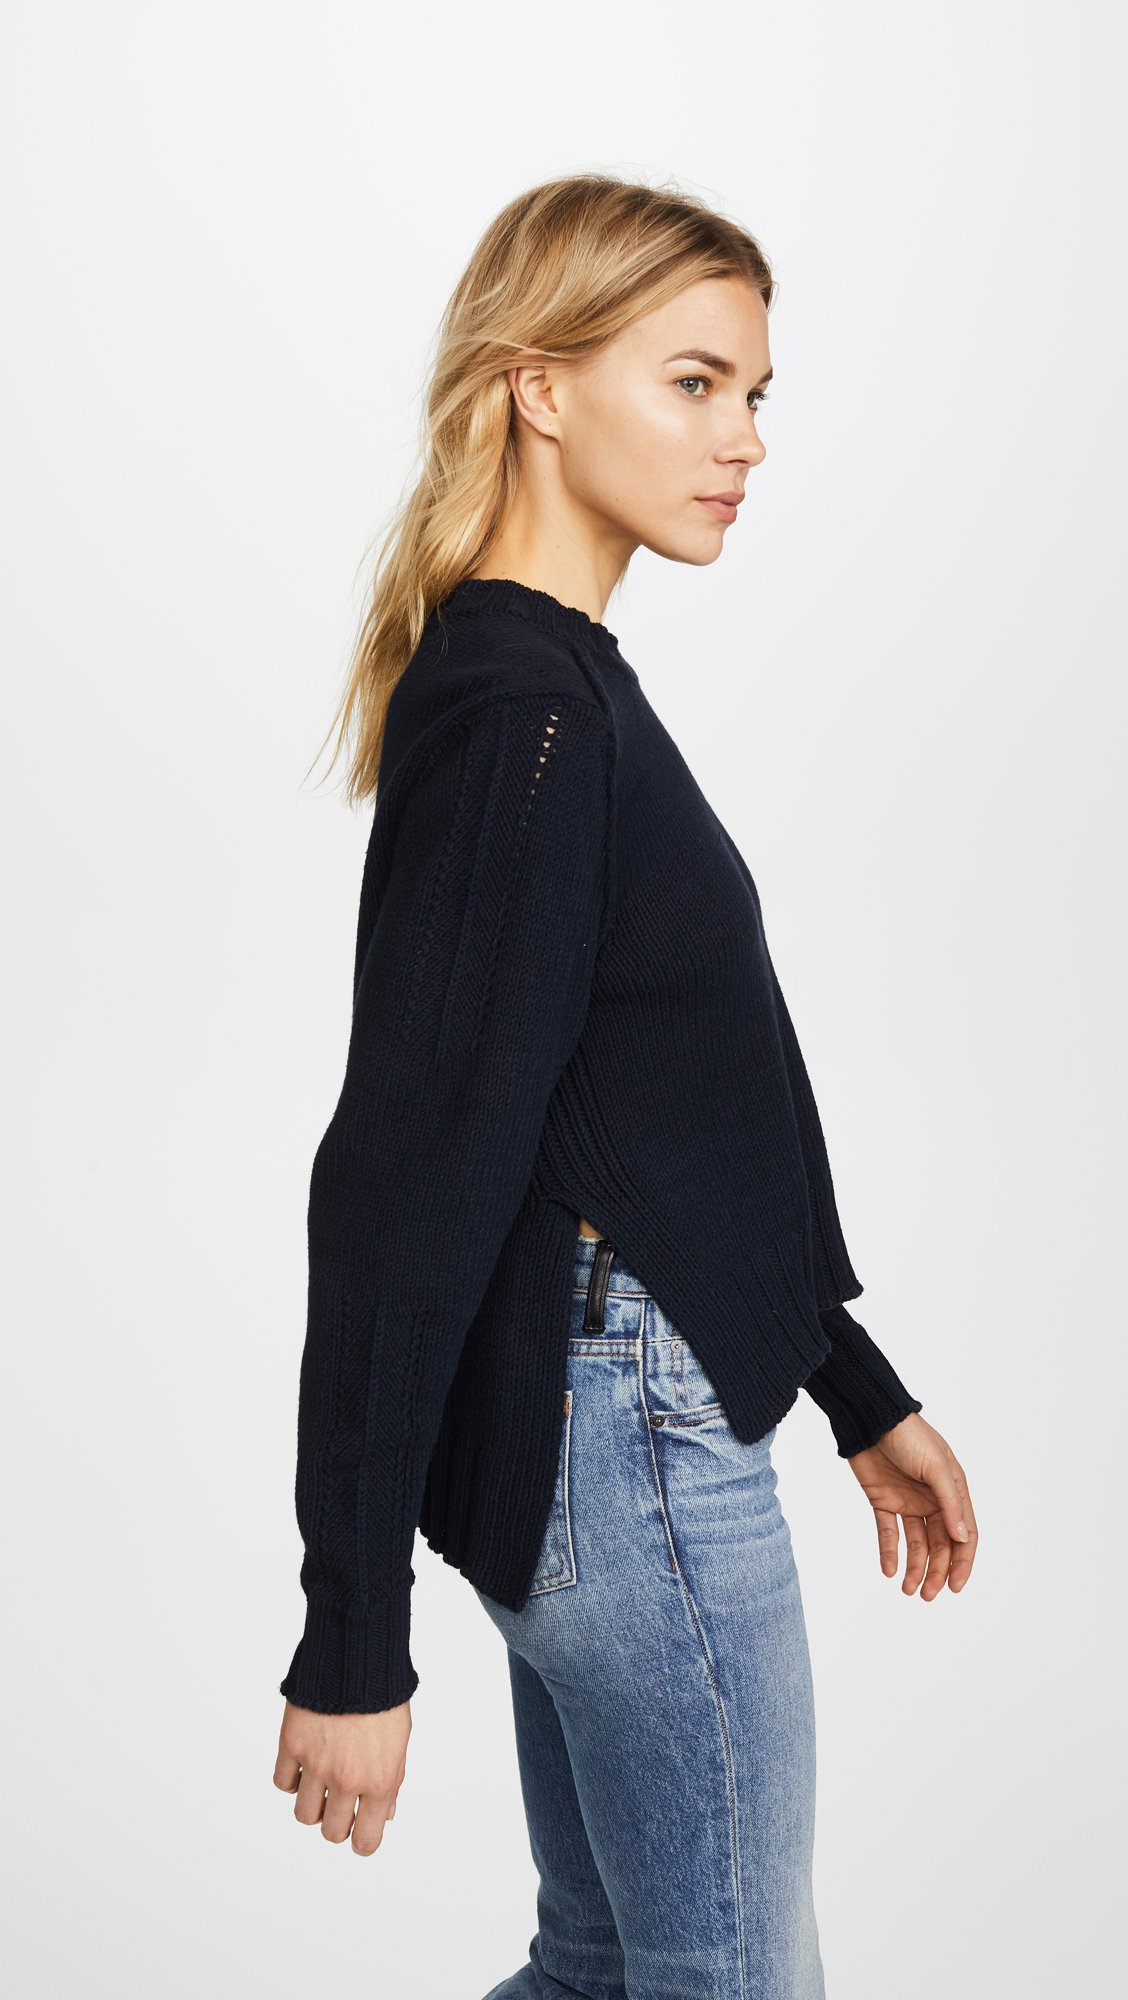 360 SWEATER Women's Kendra Sweater, Midnight, X-Small by 360SWEATER (Image #4)